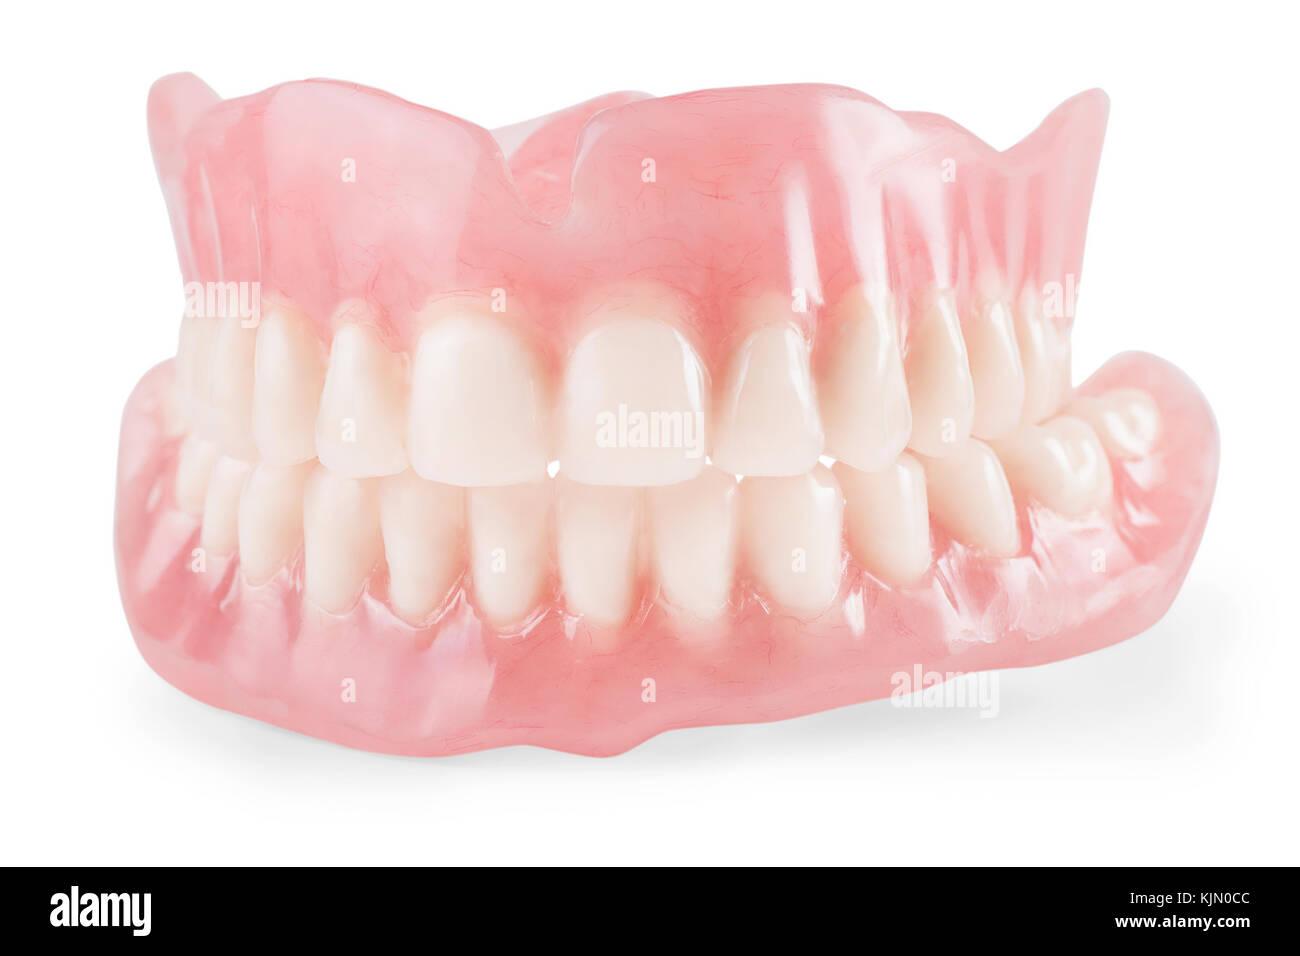 False teeth close up. Isolated on white, clipping path included - Stock Image